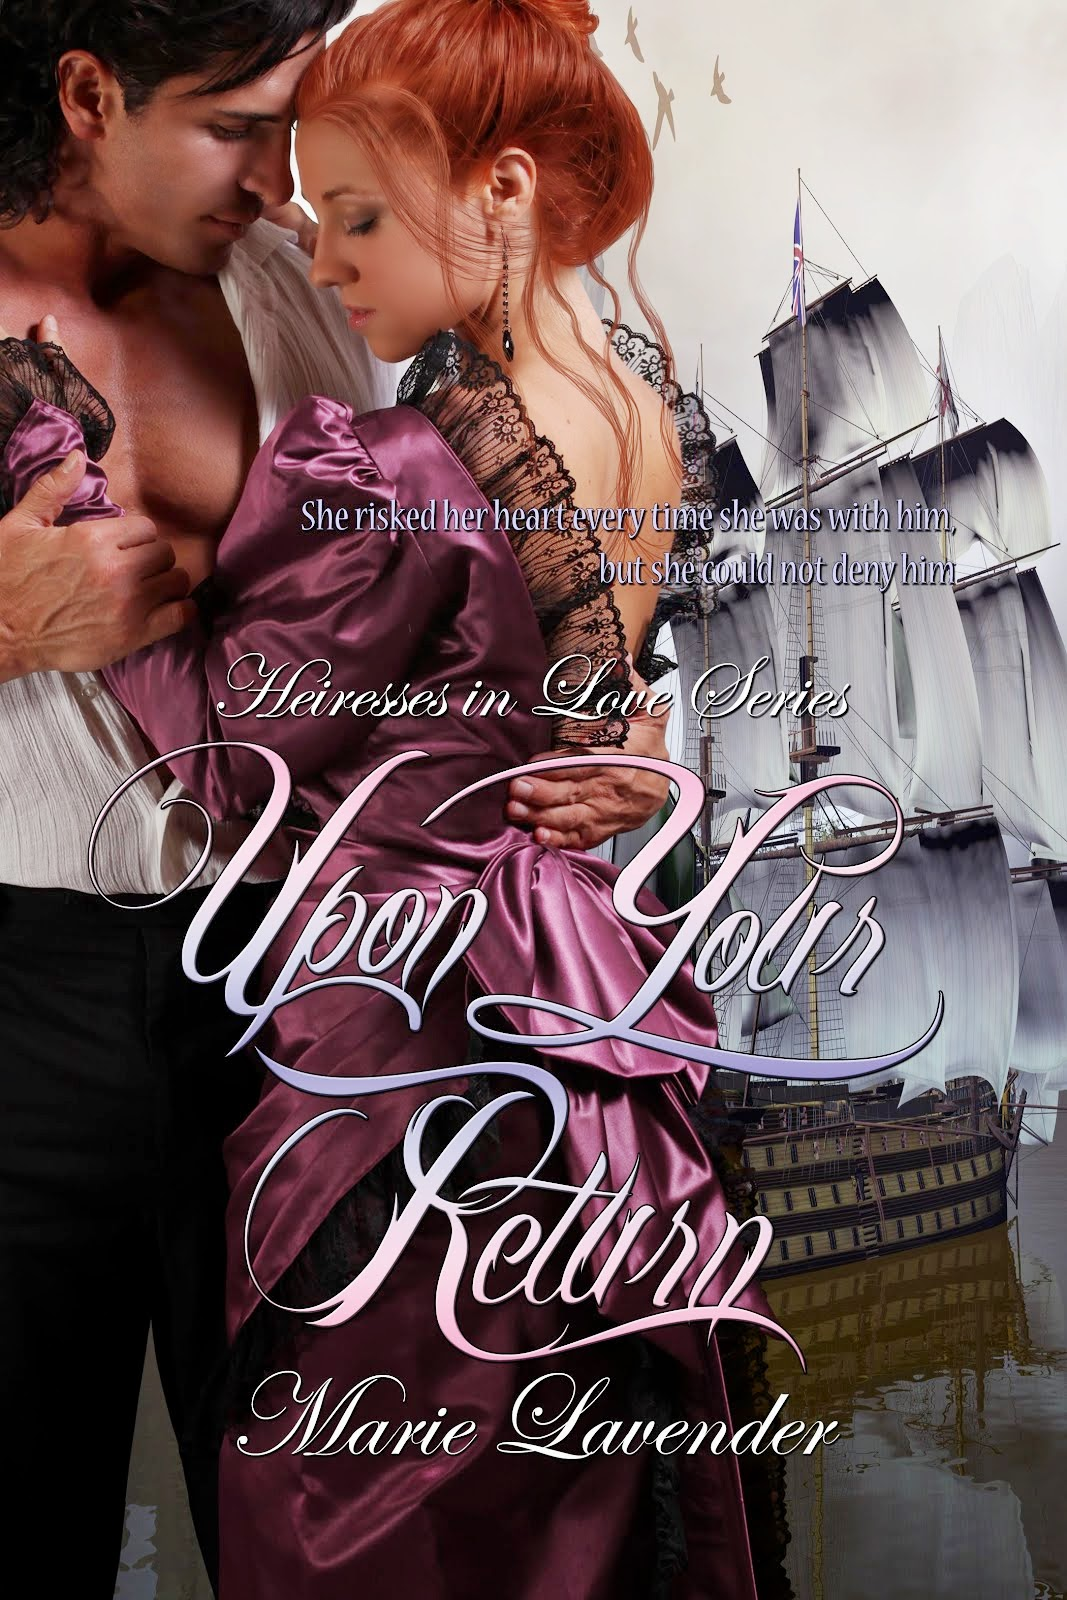 http://www.amazon.com/Upon-Your-Return-Marie-Lavender-ebook/dp/B00I0D9LQ8/ref=sr_1_1?s=books&ie=UTF8&qid=1391477322&sr=1-1&keywords=Upon+Your+Return